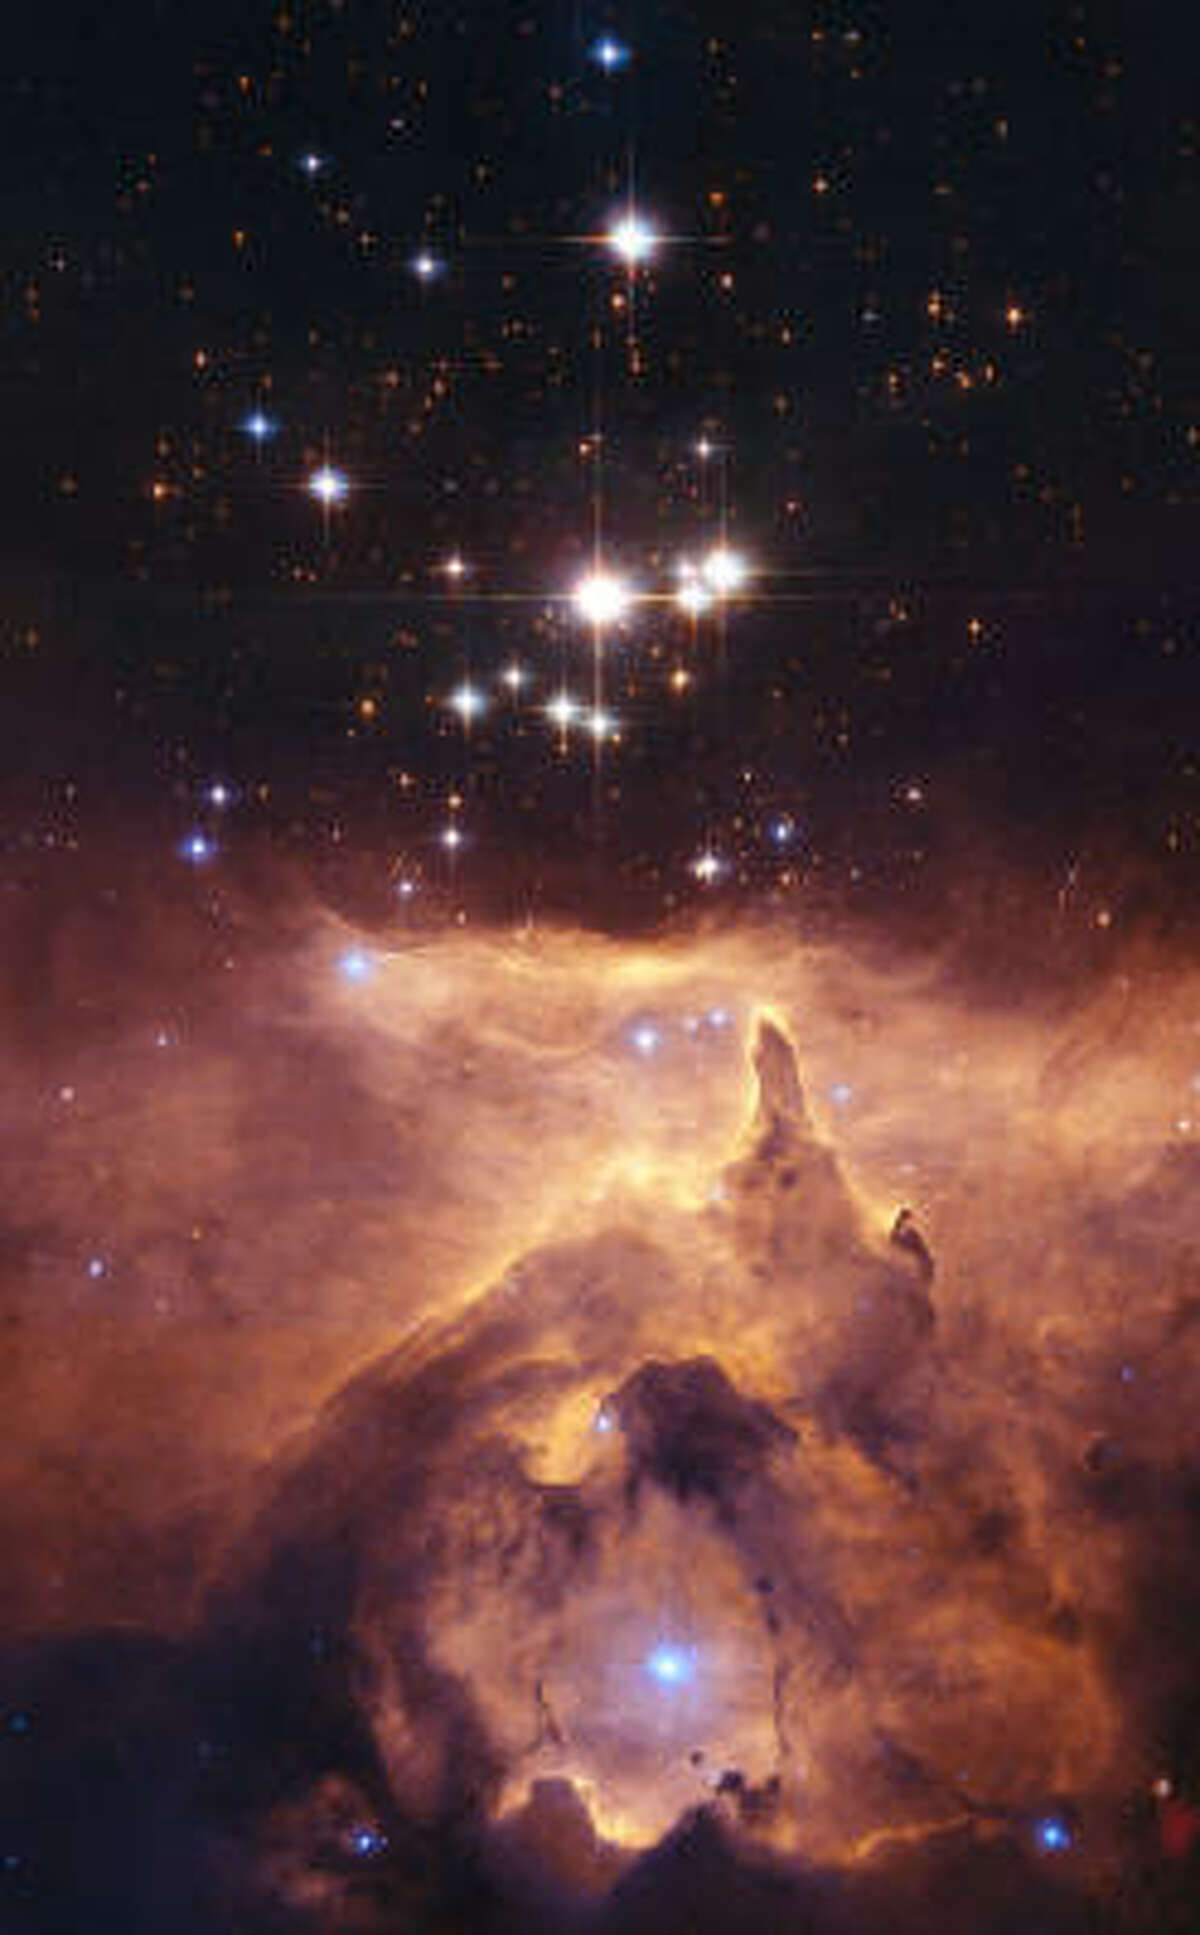 This photo, supplied by NASA and the European Space Agency on Monday, Dec. 11, 2006, shows Pismis 24-1, a bright young star that lies in the core of the small open star cluster Pismis 24, the bright stars in this Hubble Space Telescope image.